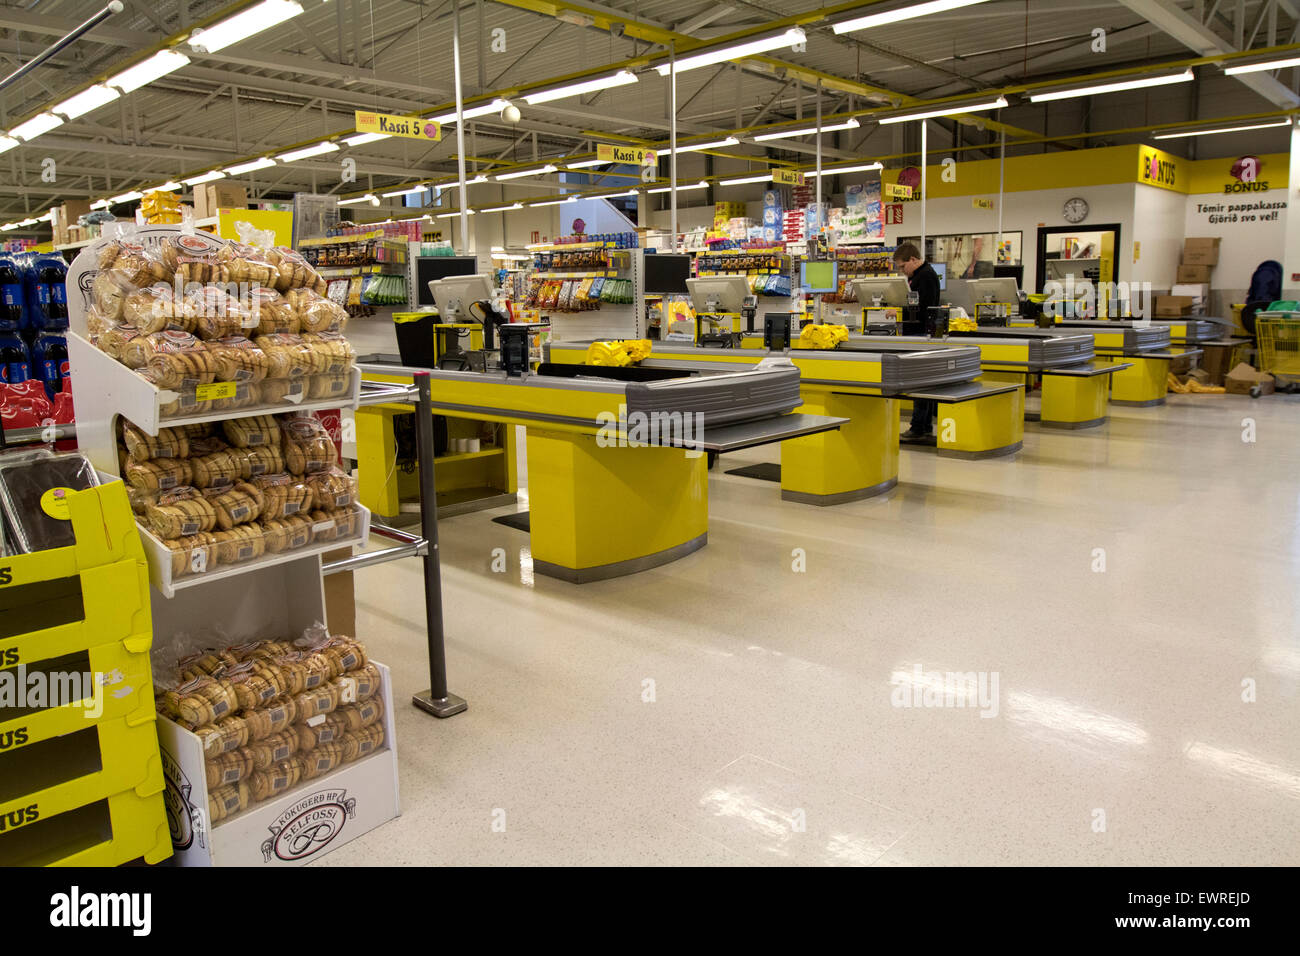 checkouts and tills of interior of bonus supermarket Iceland - Stock Image